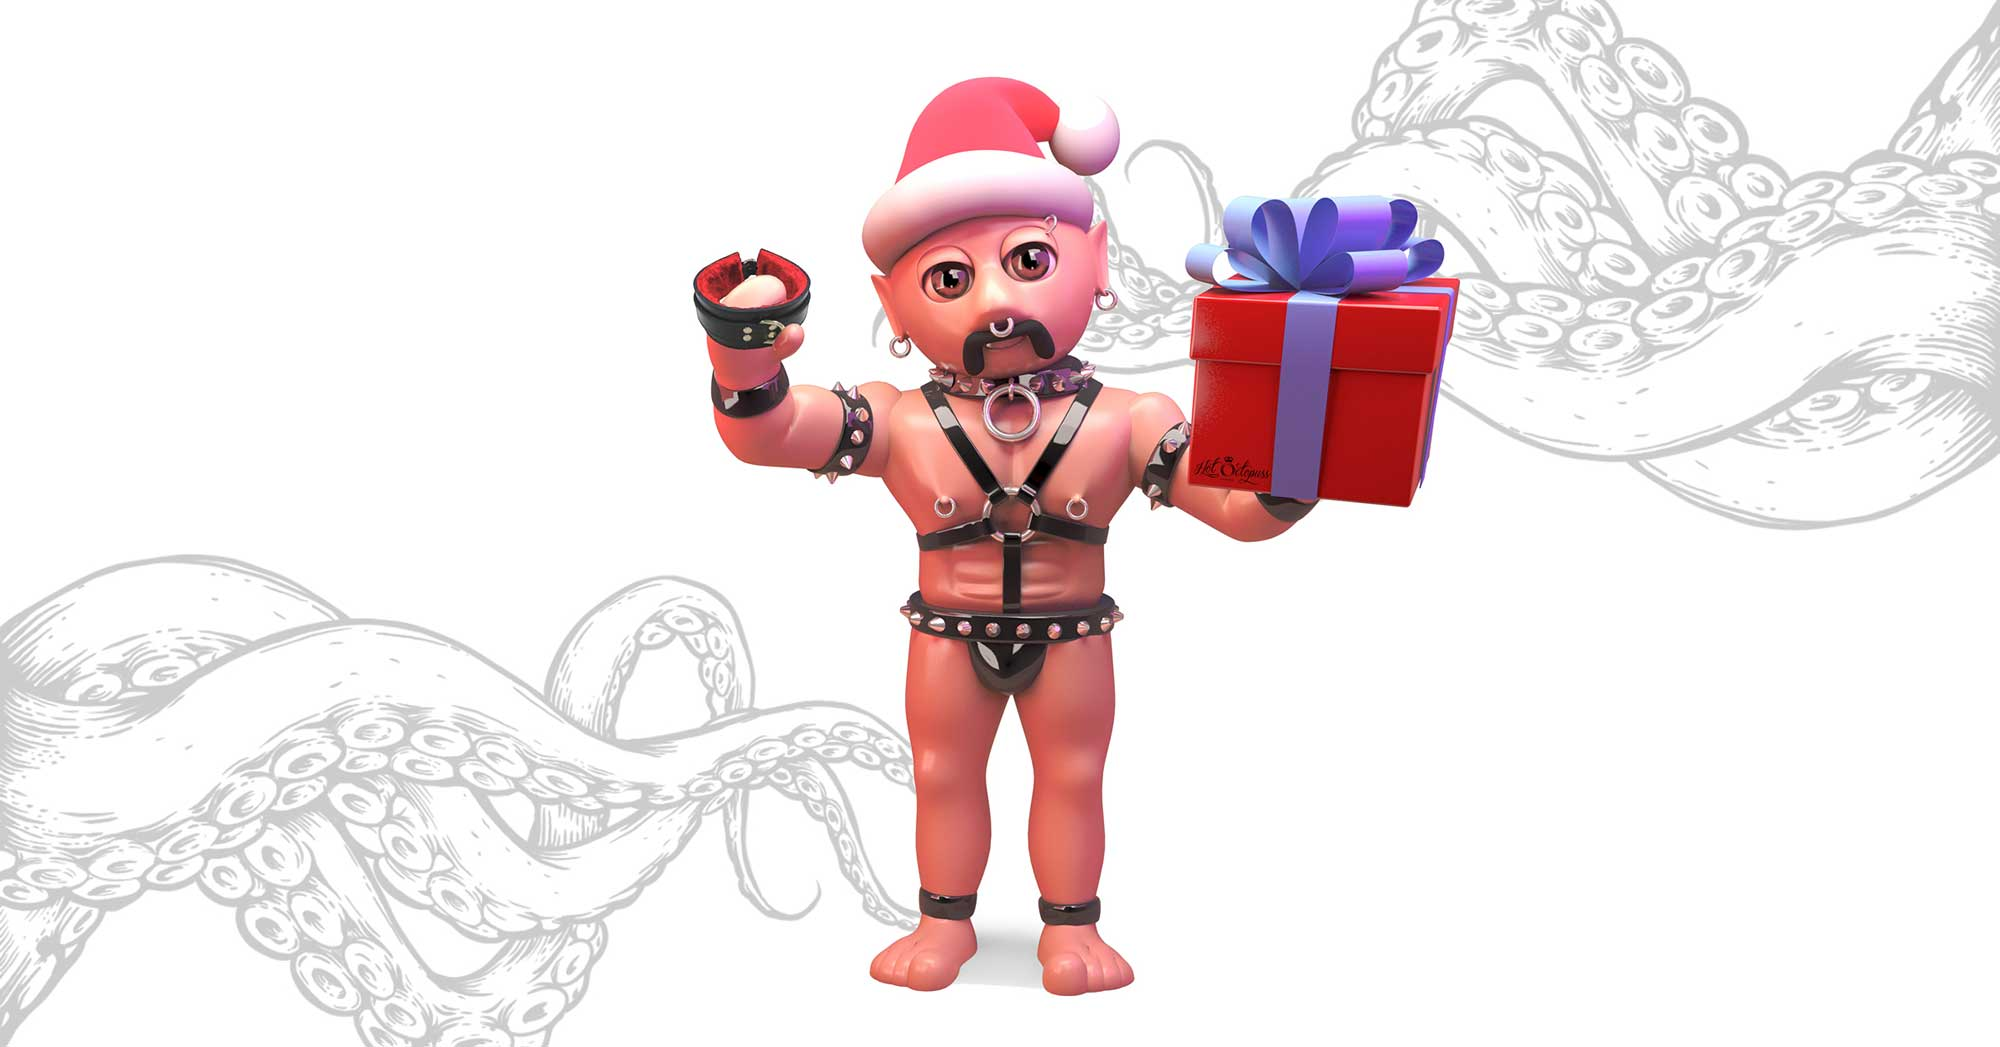 BDSM man wearing straps and a Christmas hat, holding a present and a padded collar